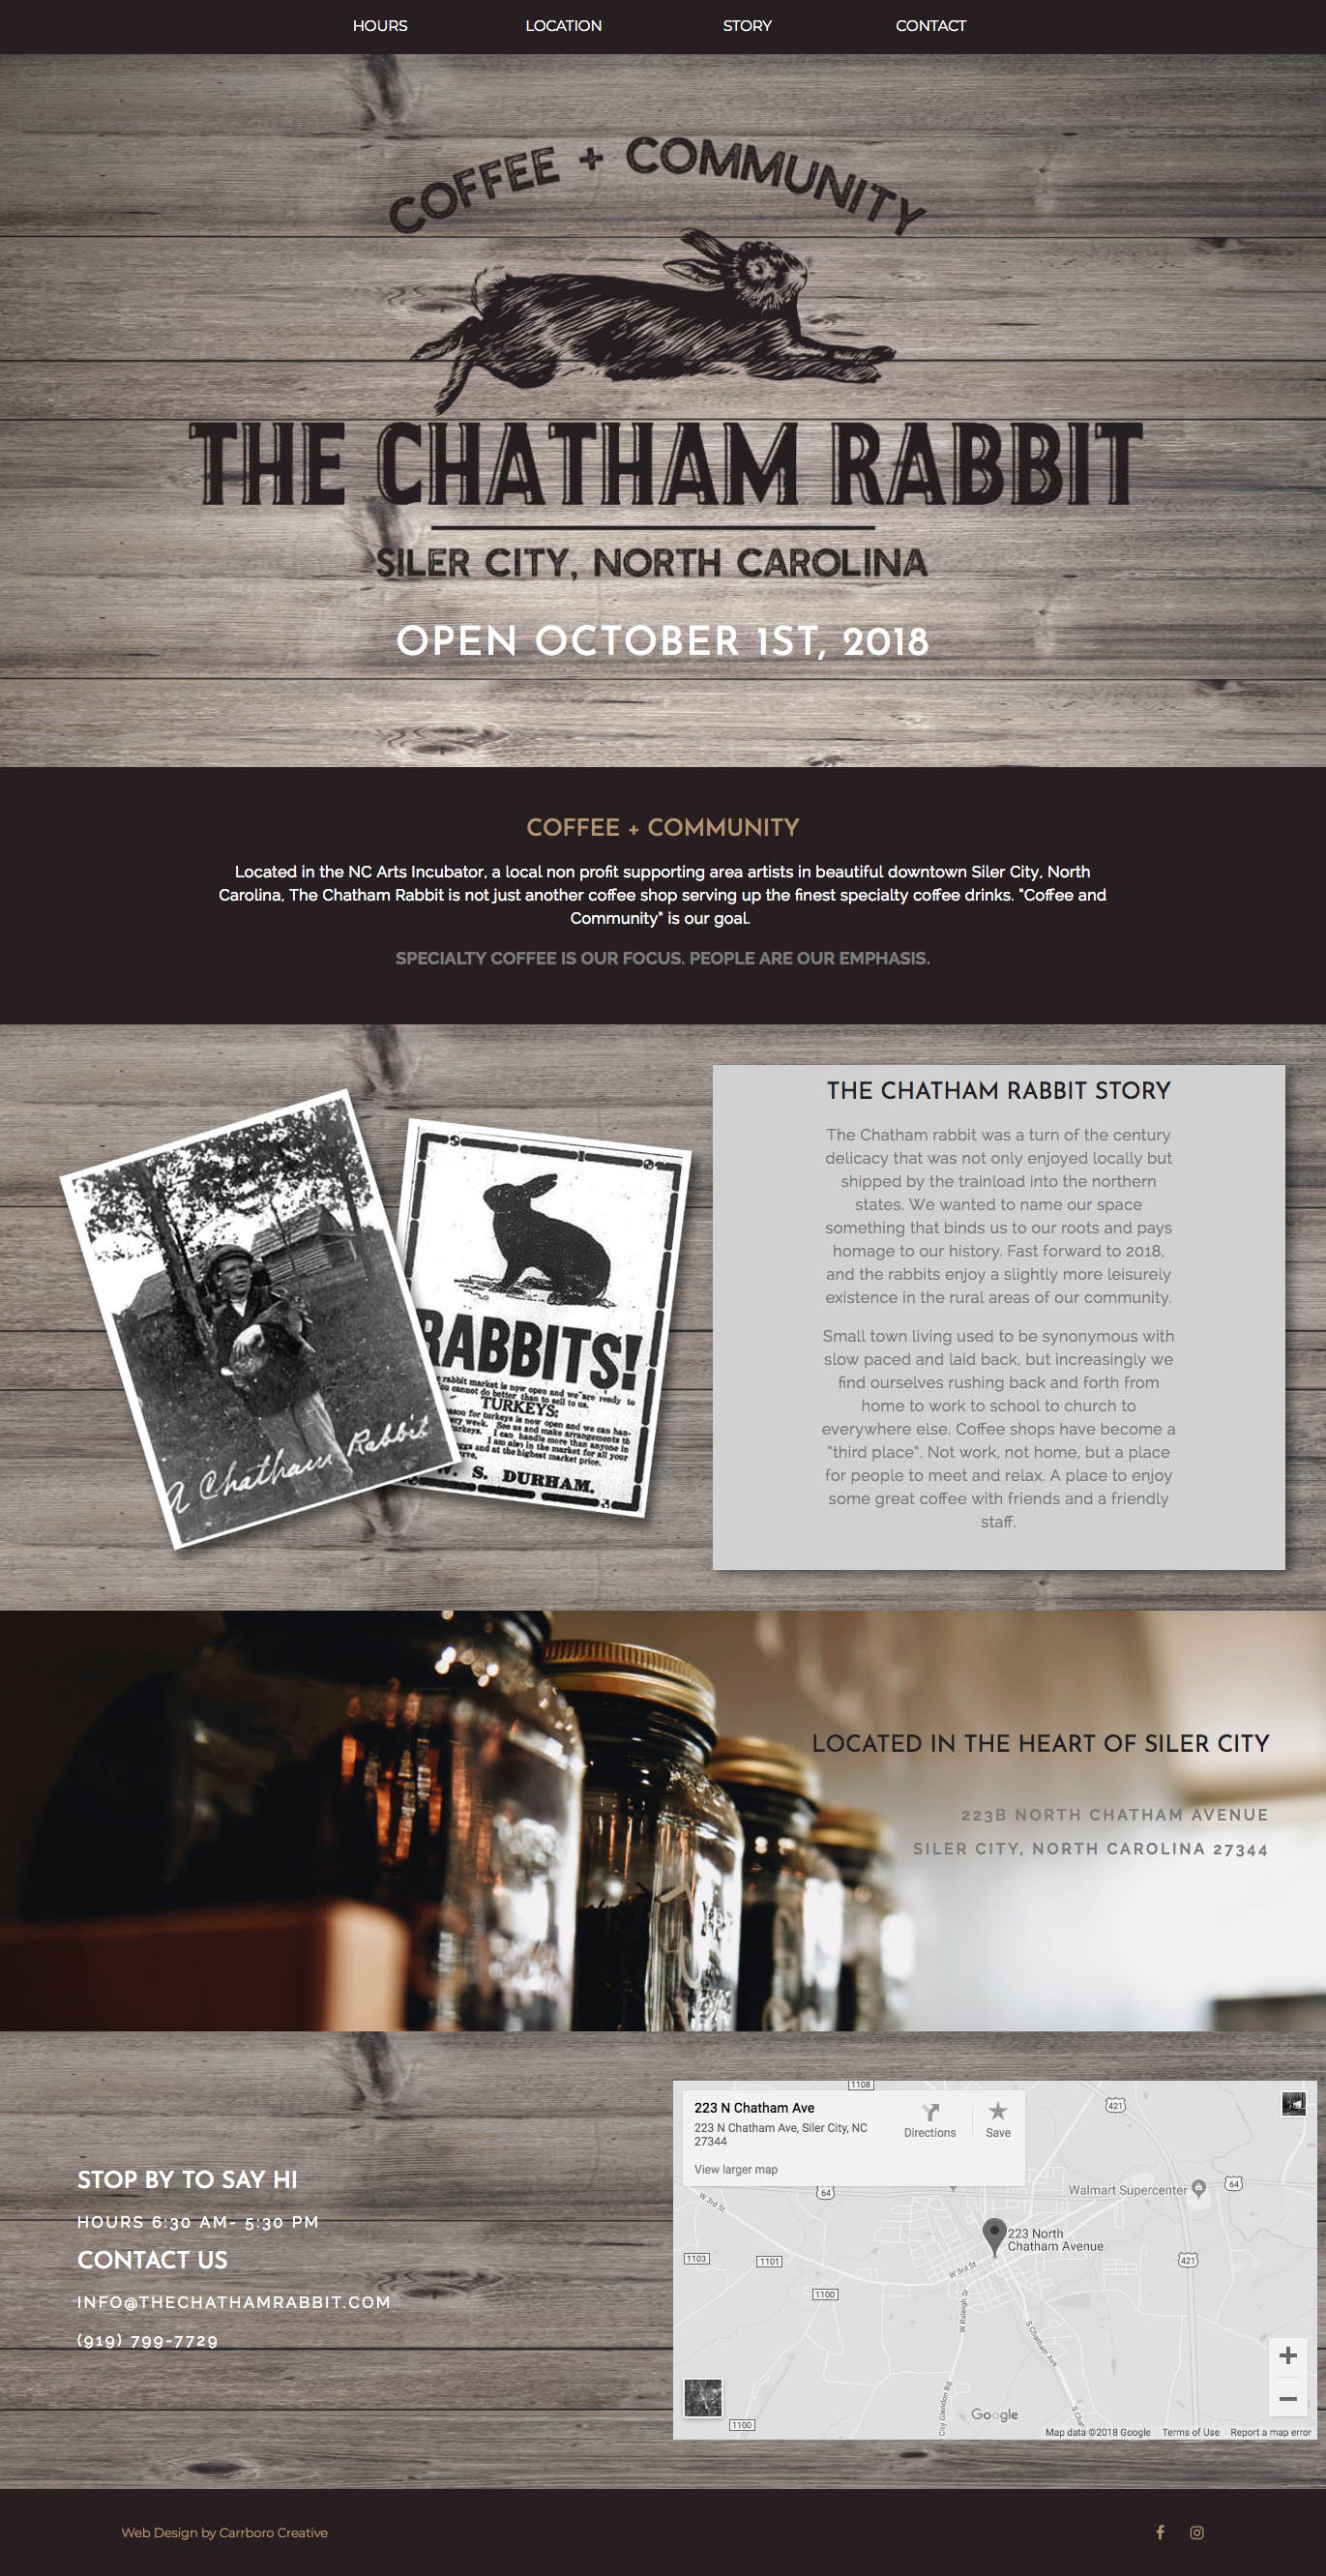 The Chatham Rabbit Coffee Shop Website Design